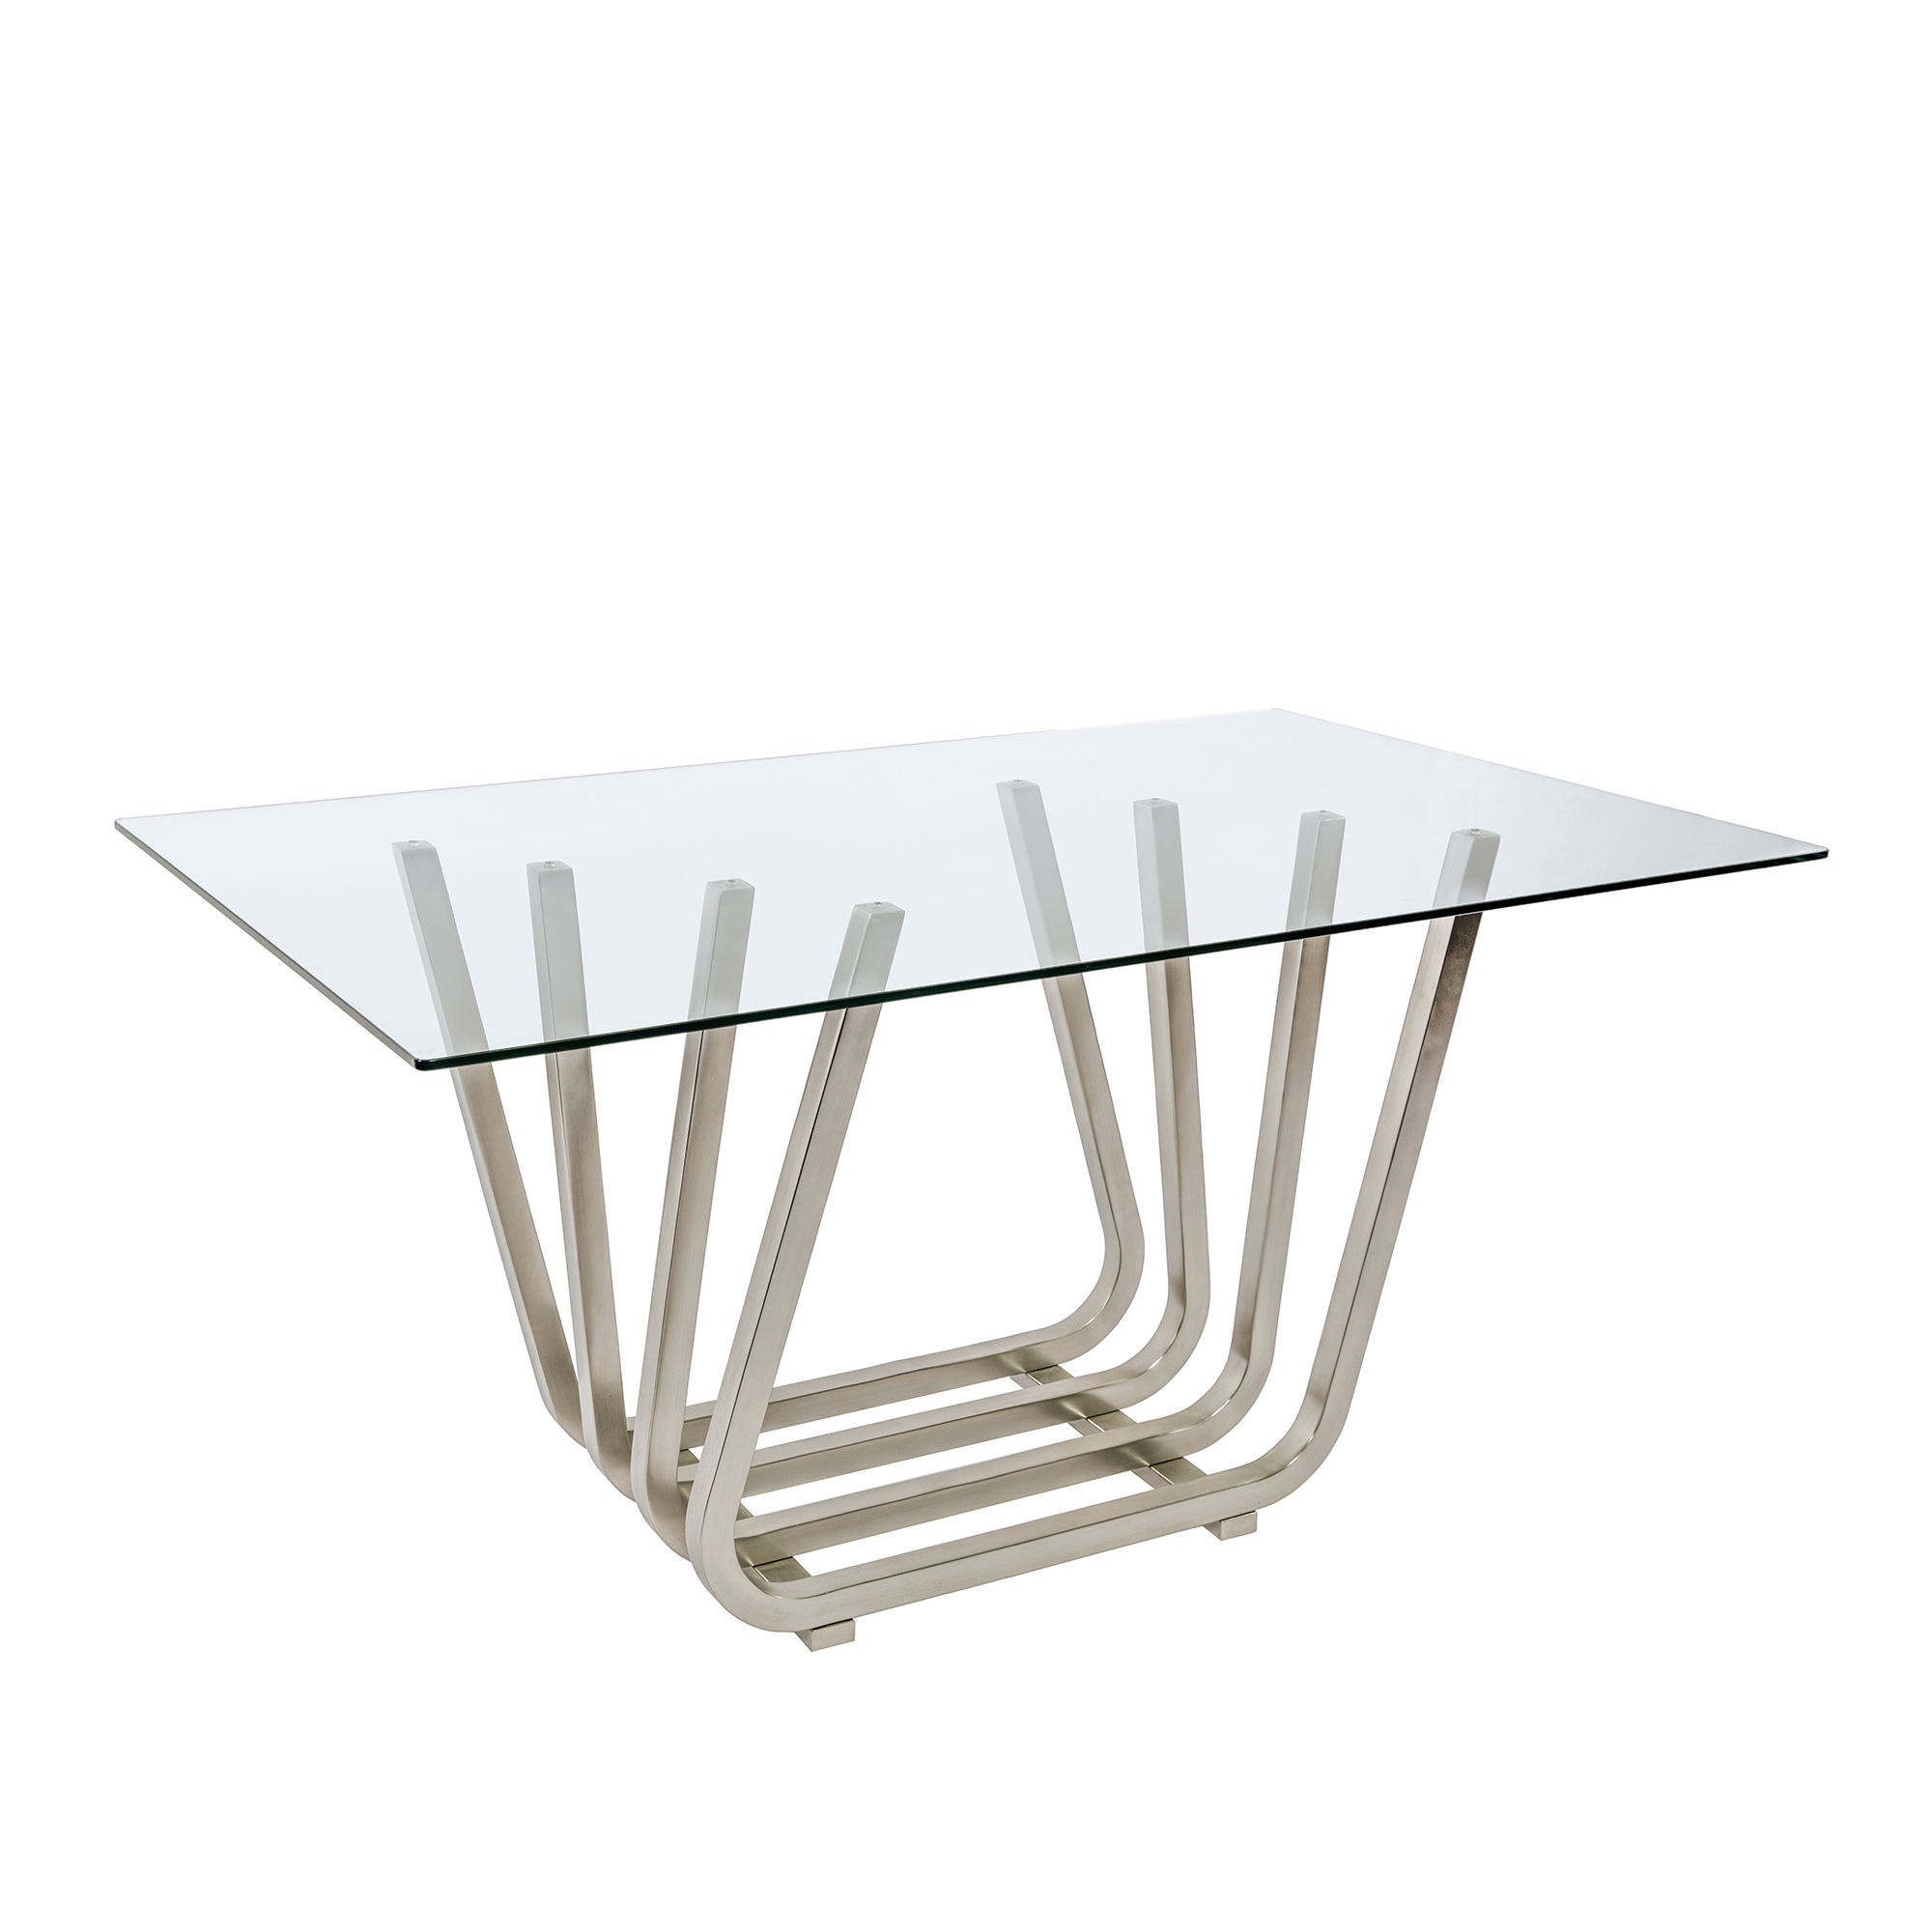 Modern New Design Home Dining Room Furniture Big Tempered Glass Top Stainless Steel Base Rectangle Dining Tables And Chairs Sets